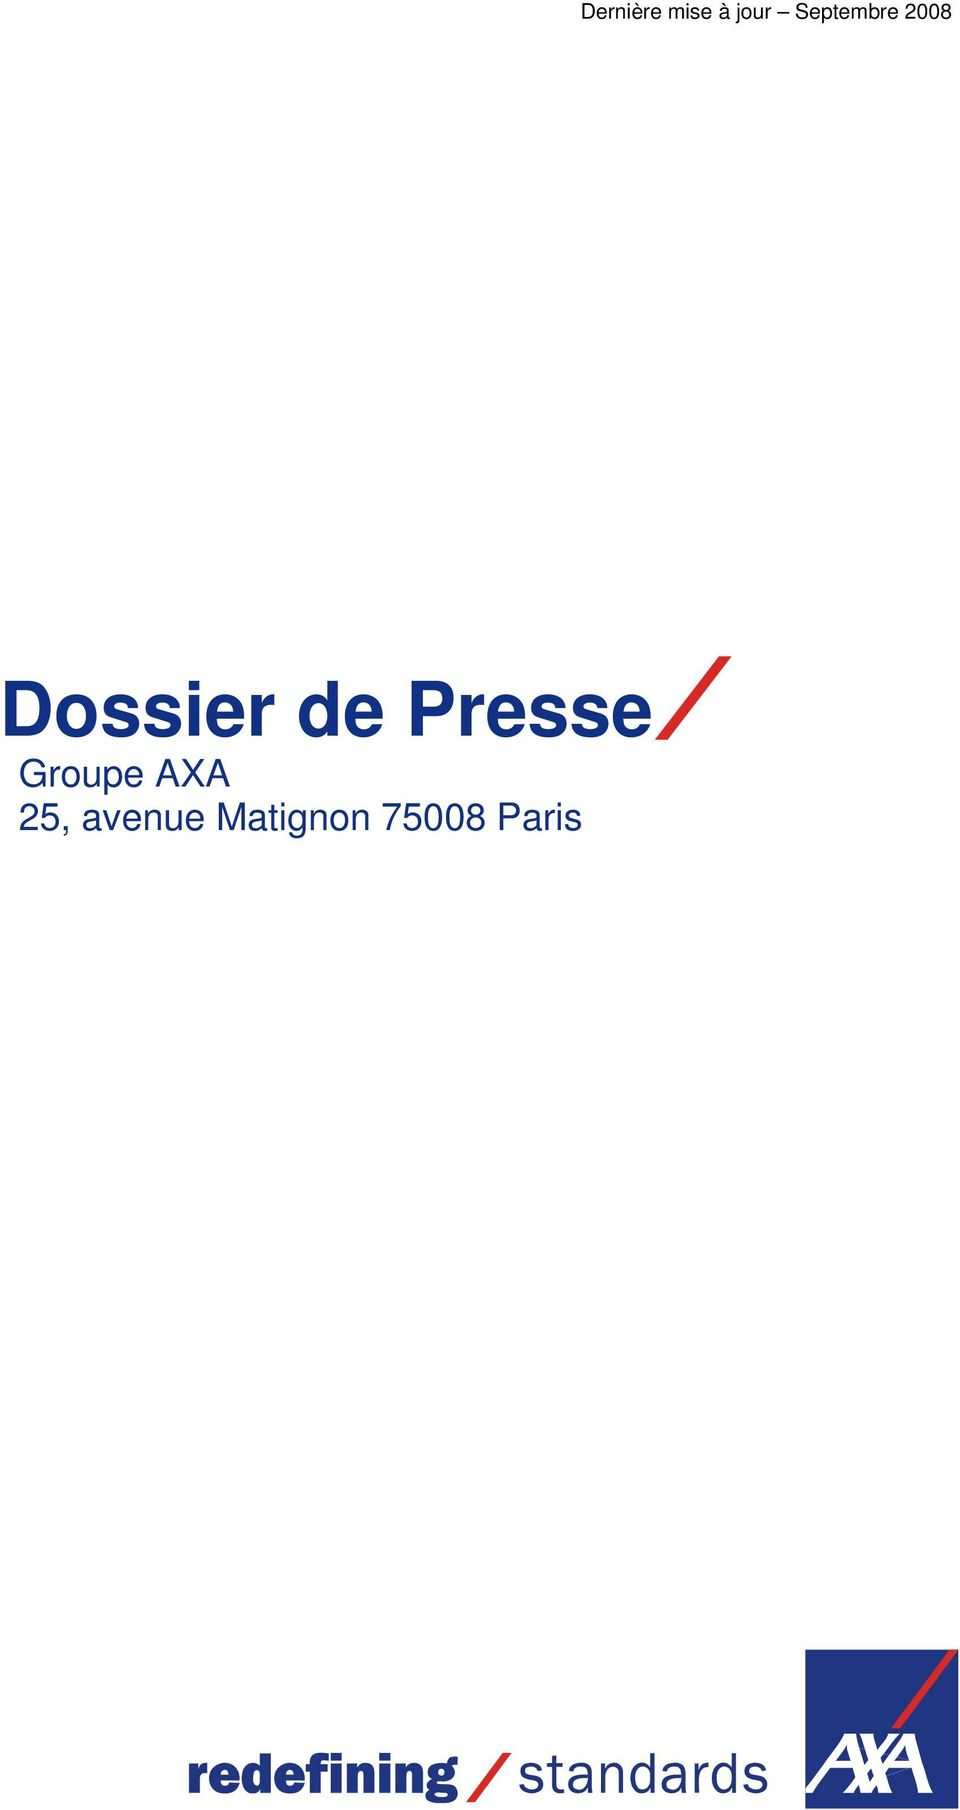 Matignon 75008 Paris